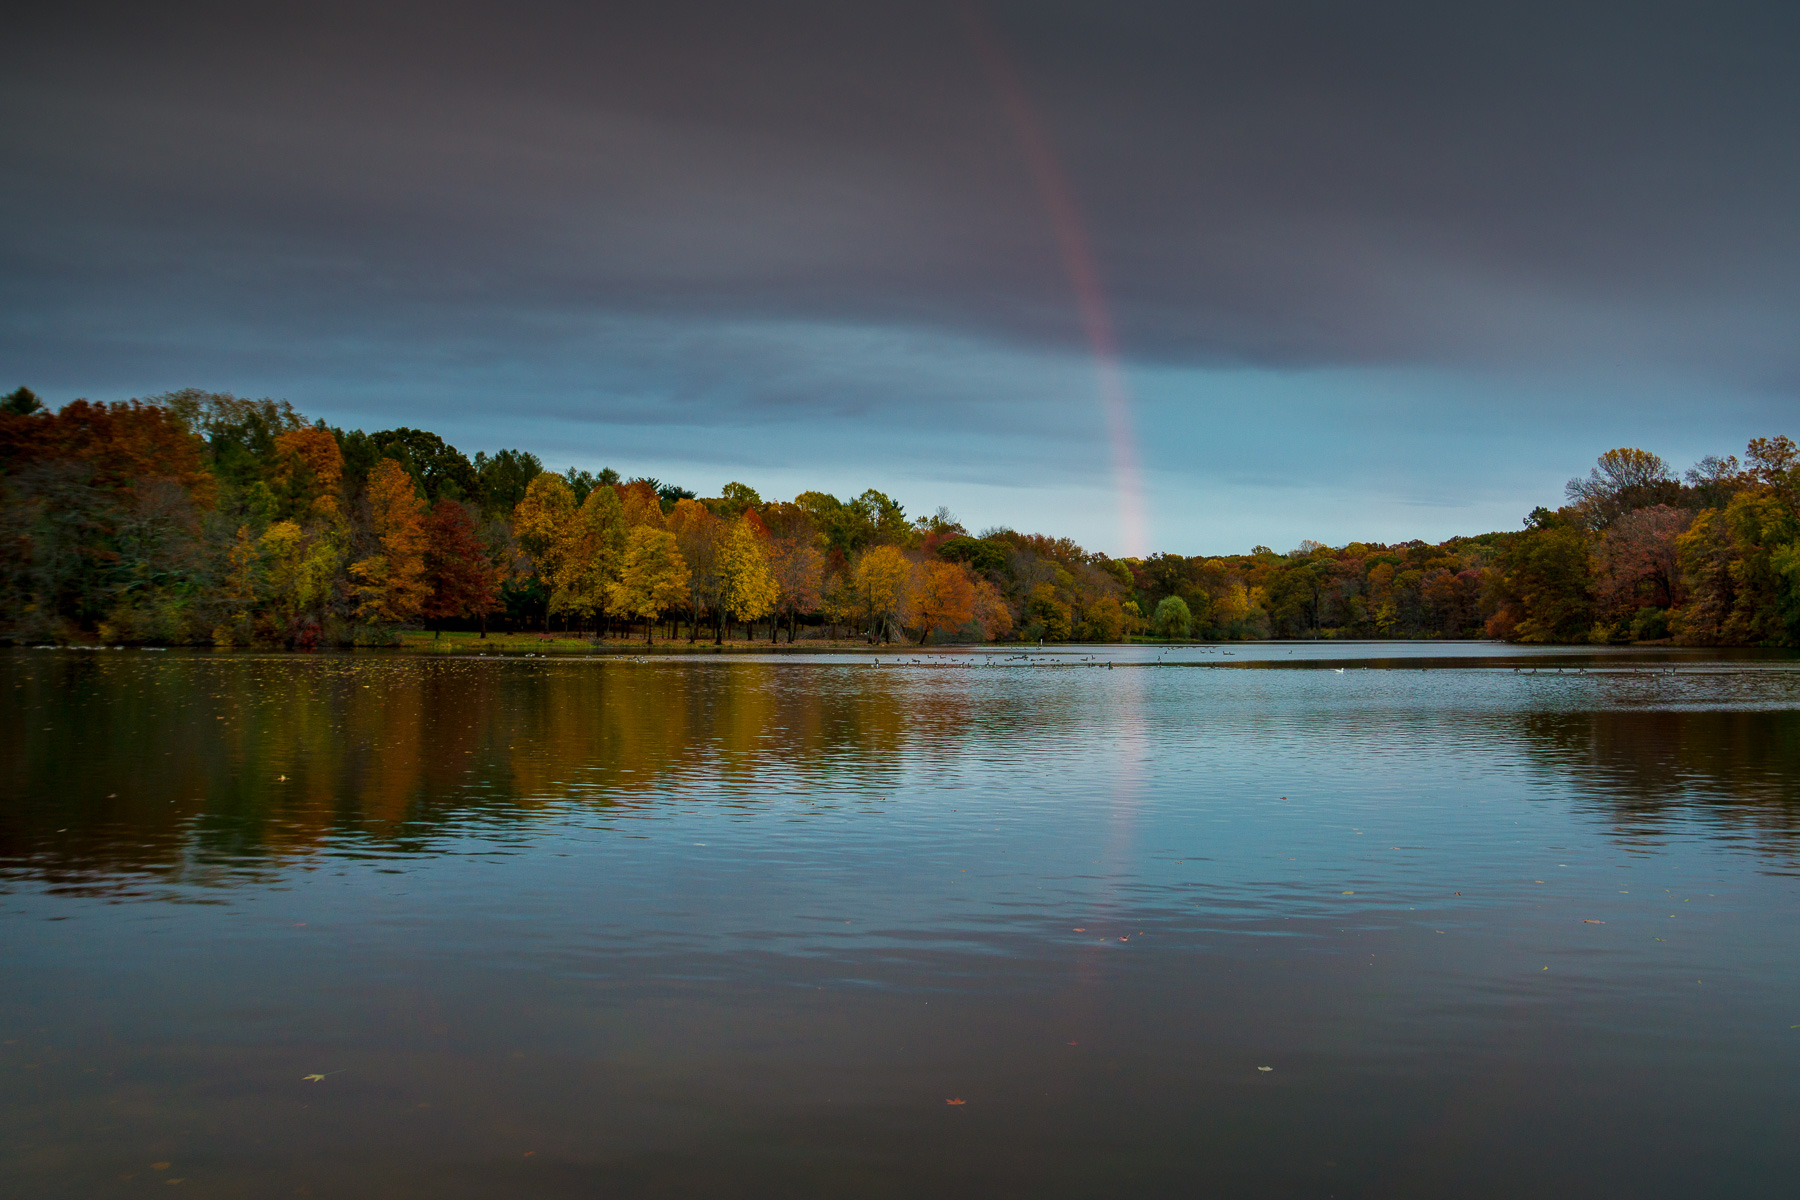 Rainbow over Lake Topanemus